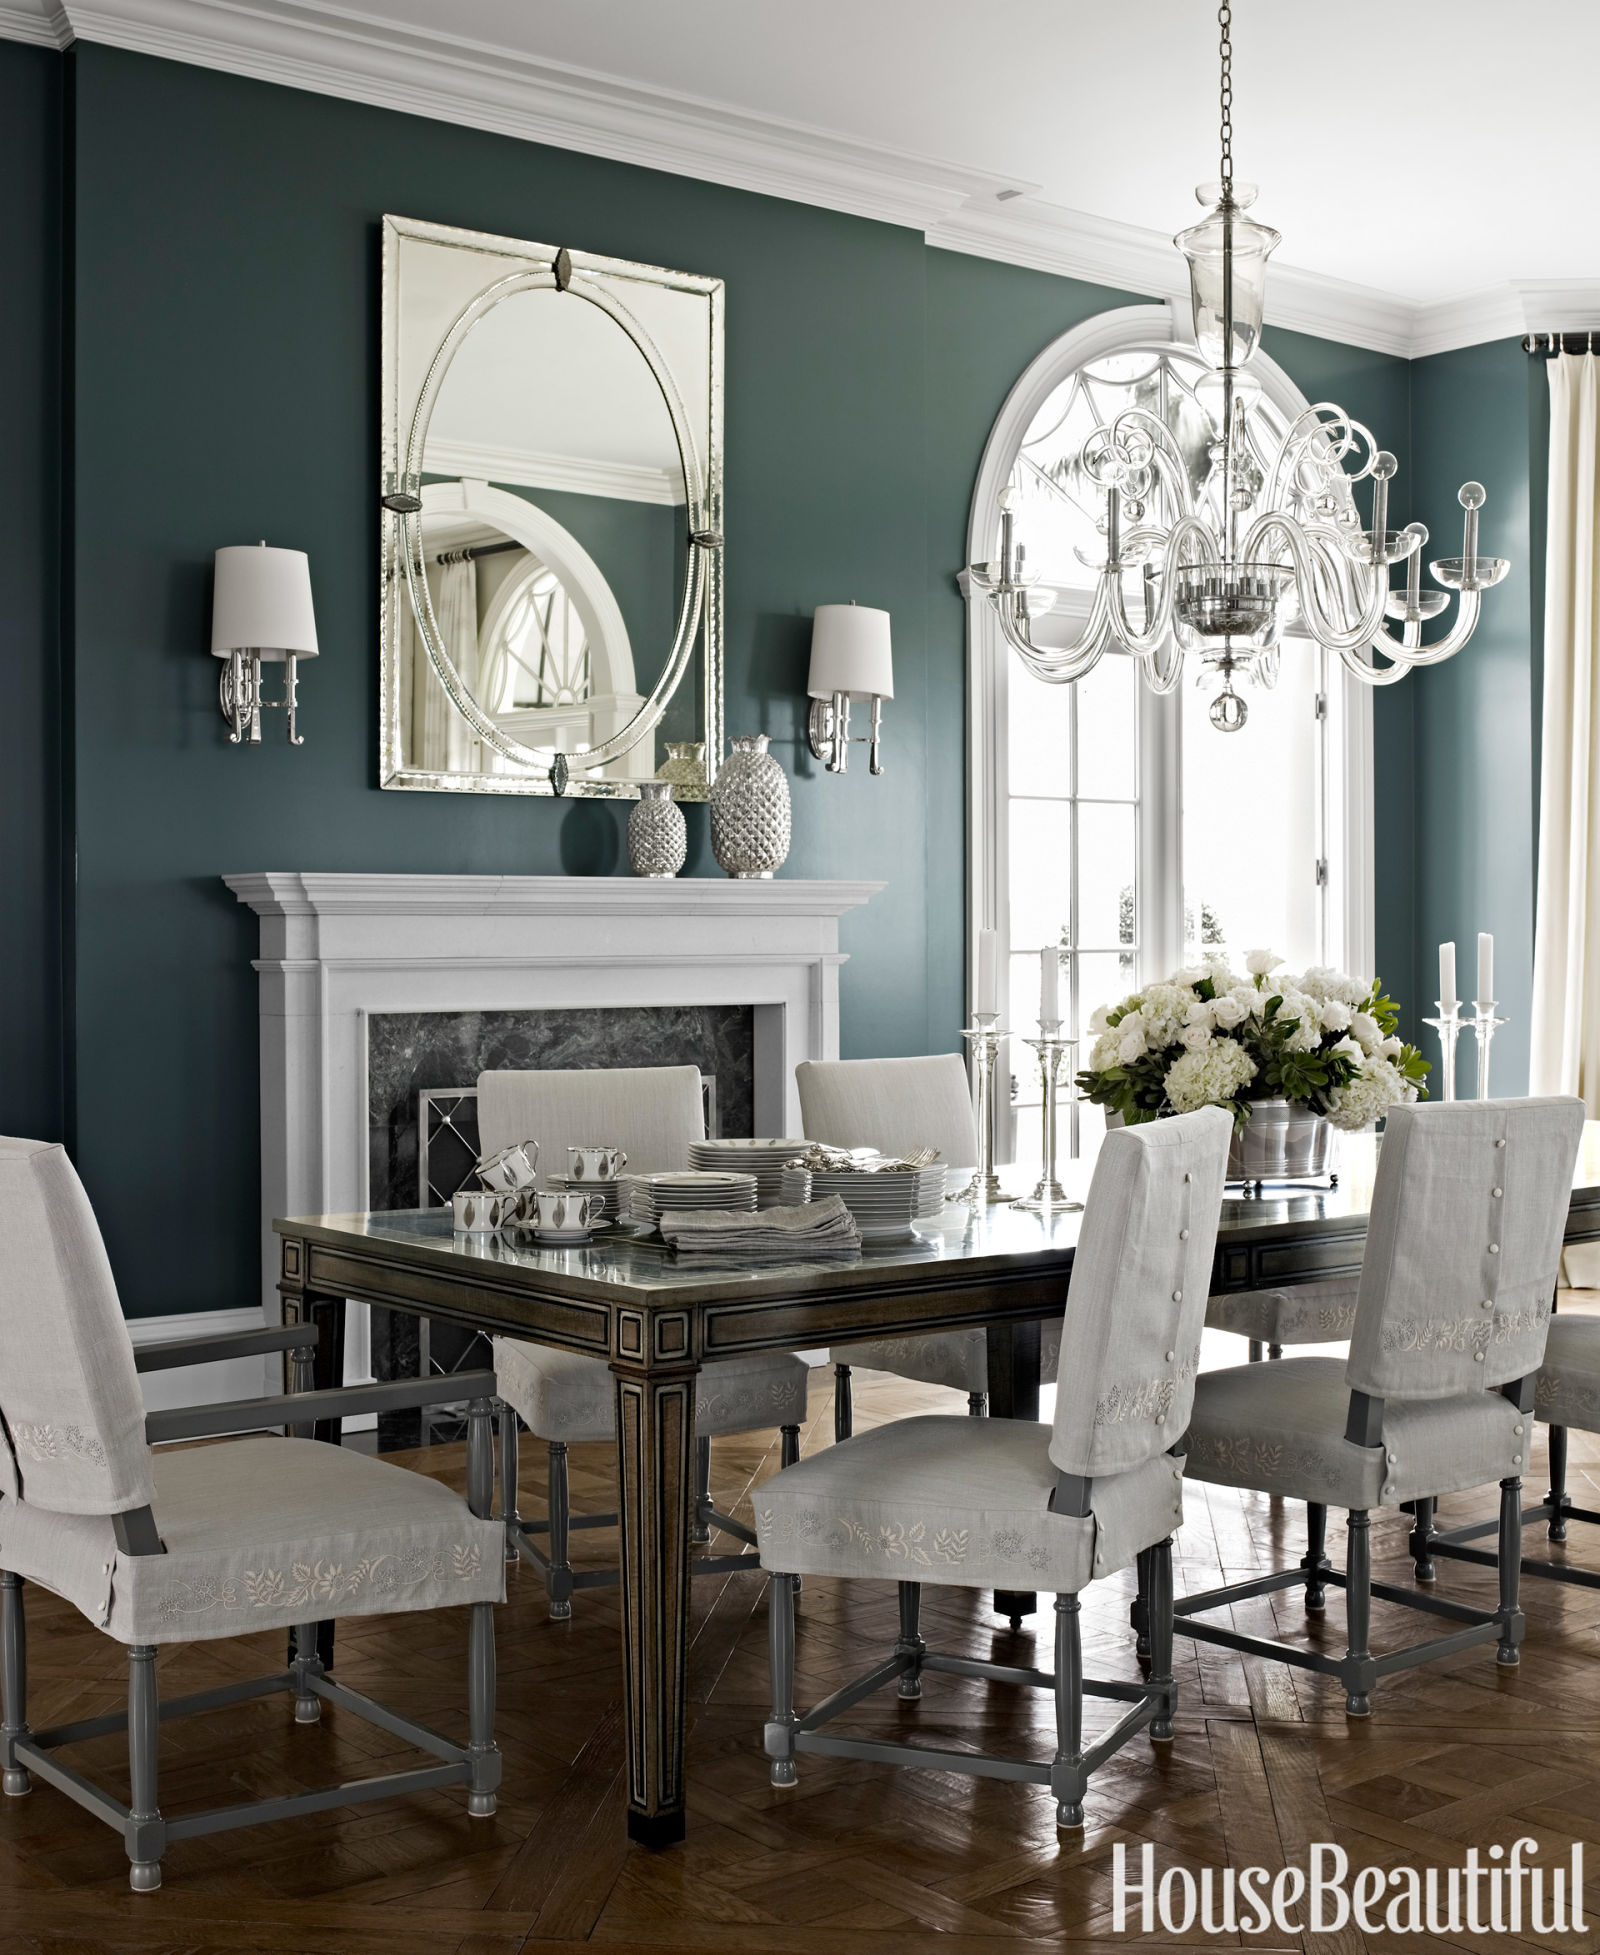 Dark Dining Room: Decorating With Dark Colors